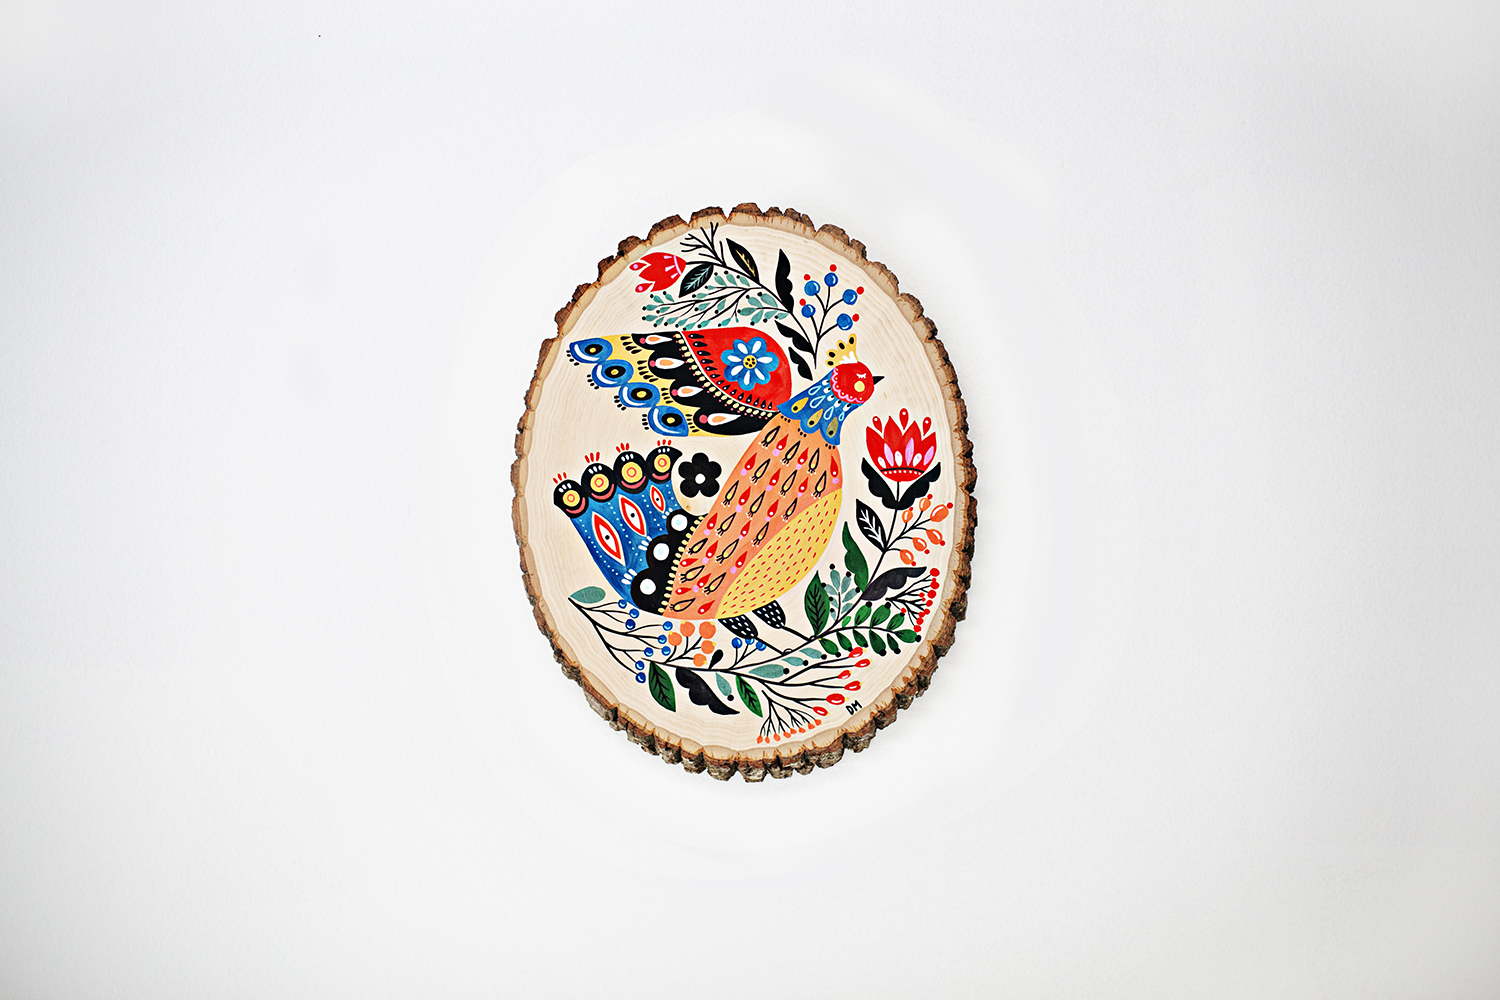 Dinara Mirtalipova Bird on Wood No5 B 72.jpg